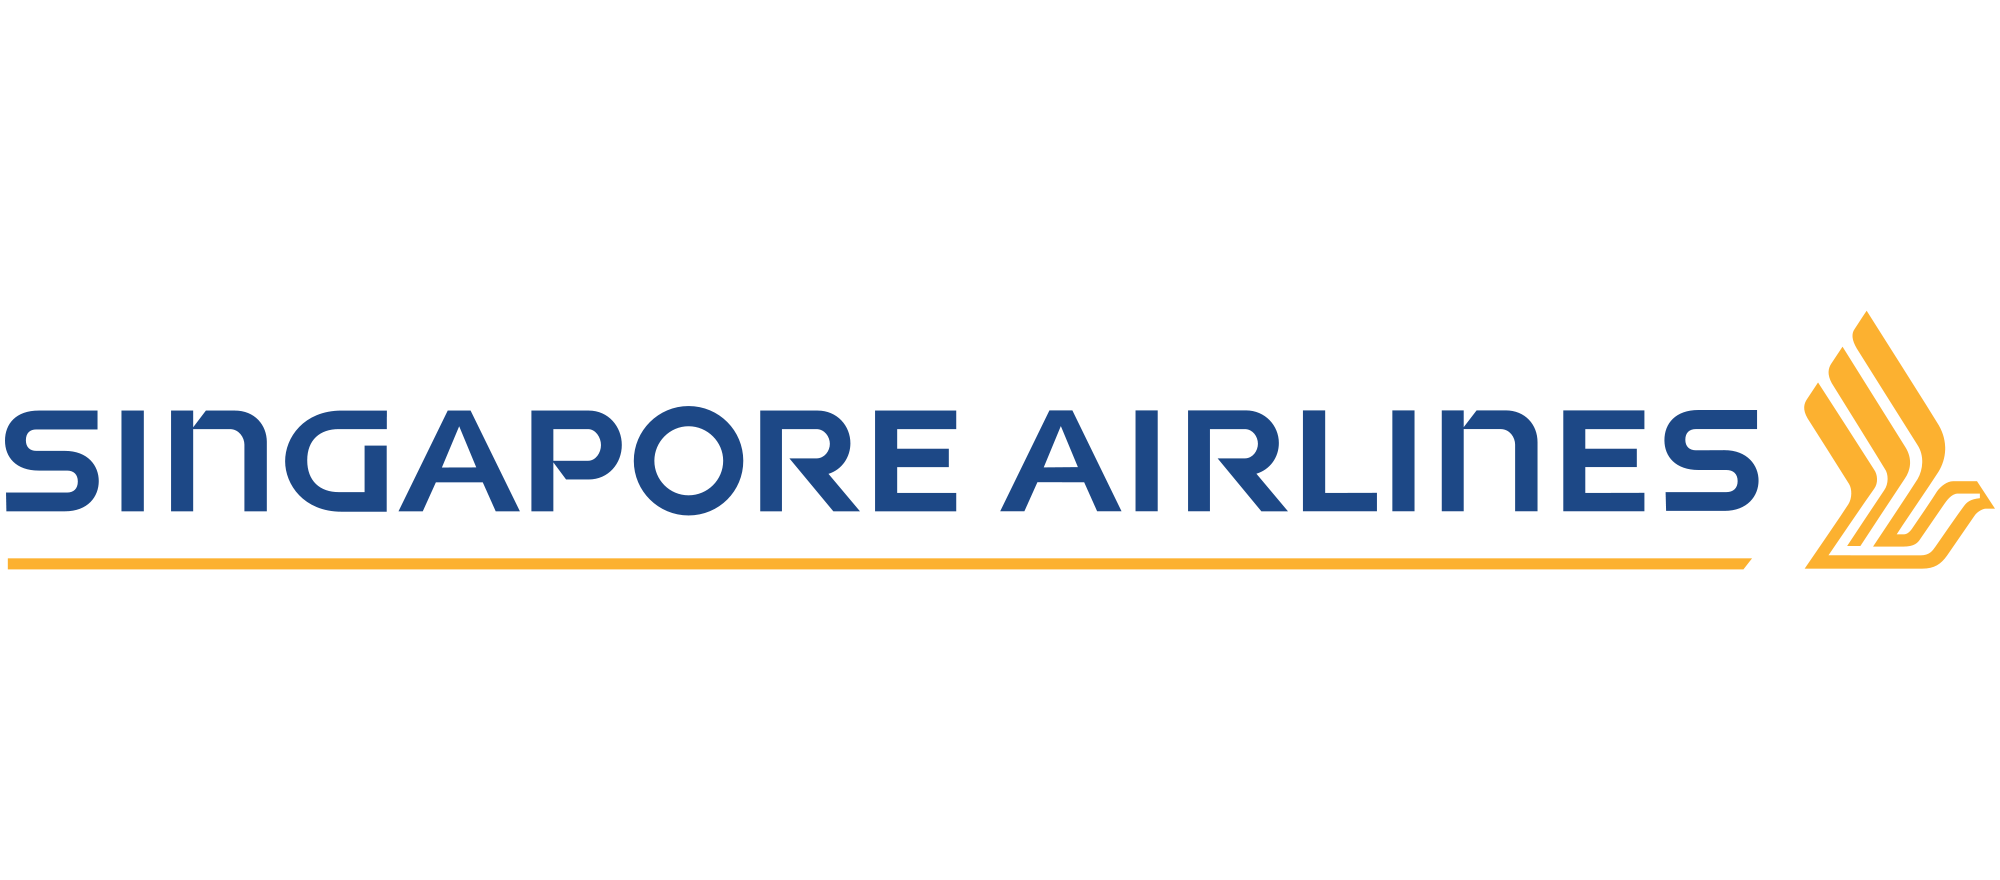 singapore airlines company The singapore airlines cargo segment involves in air cargo transportation and related activities the company was founded on january 28, 1972 and is headquartered in singapore ( see full profile ).